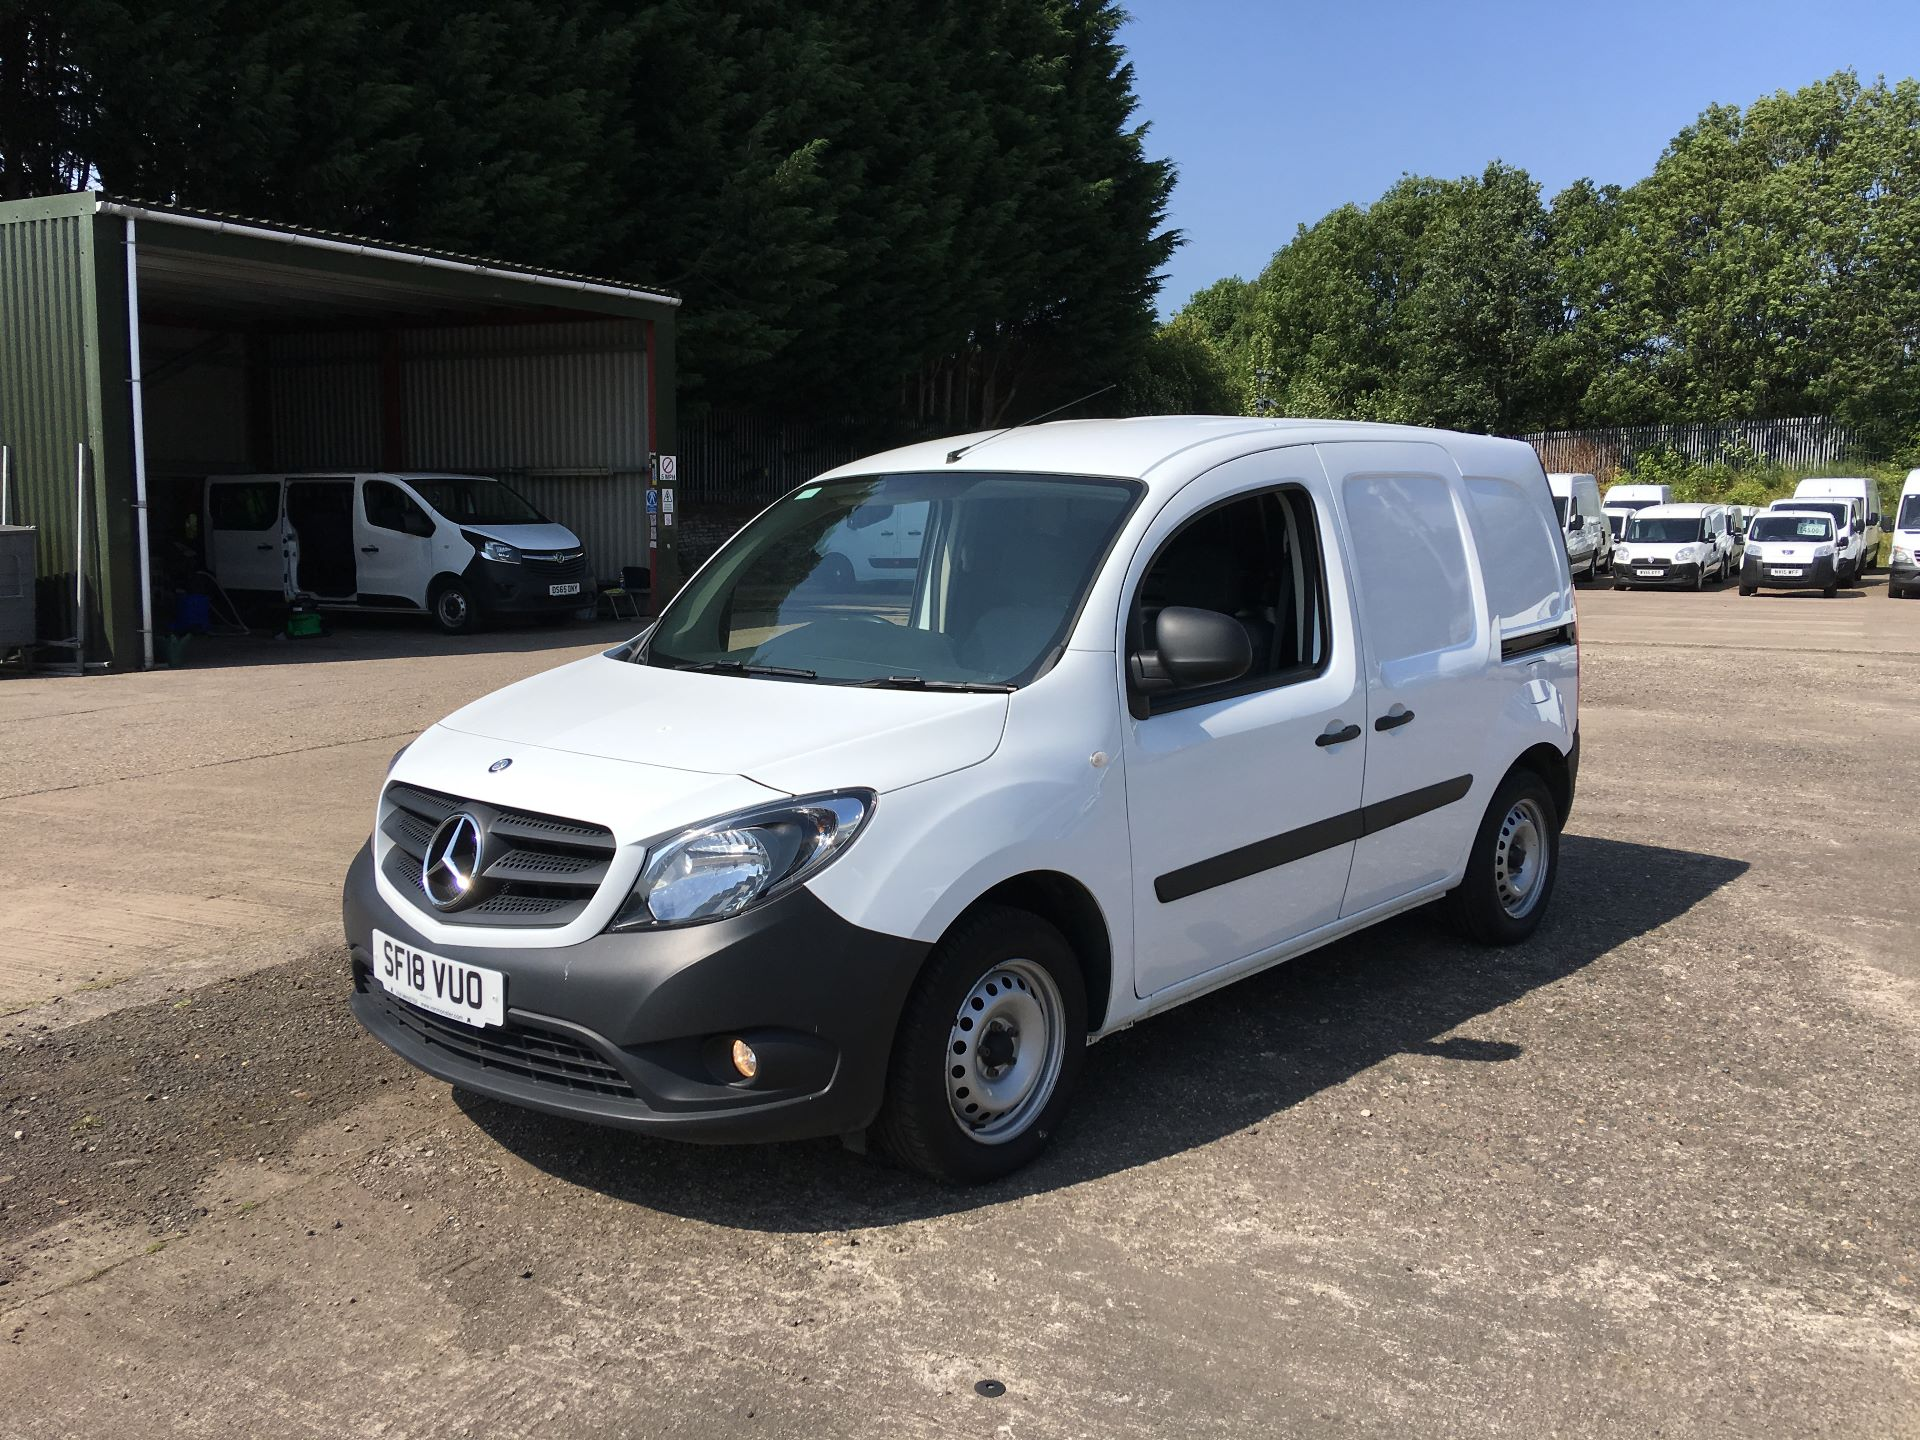 2018 Mercedes-Benz Citan LWB 109 CDI BLUE EFFICIENCY VAN EURO 5/6 (SF18VUO) Image 15